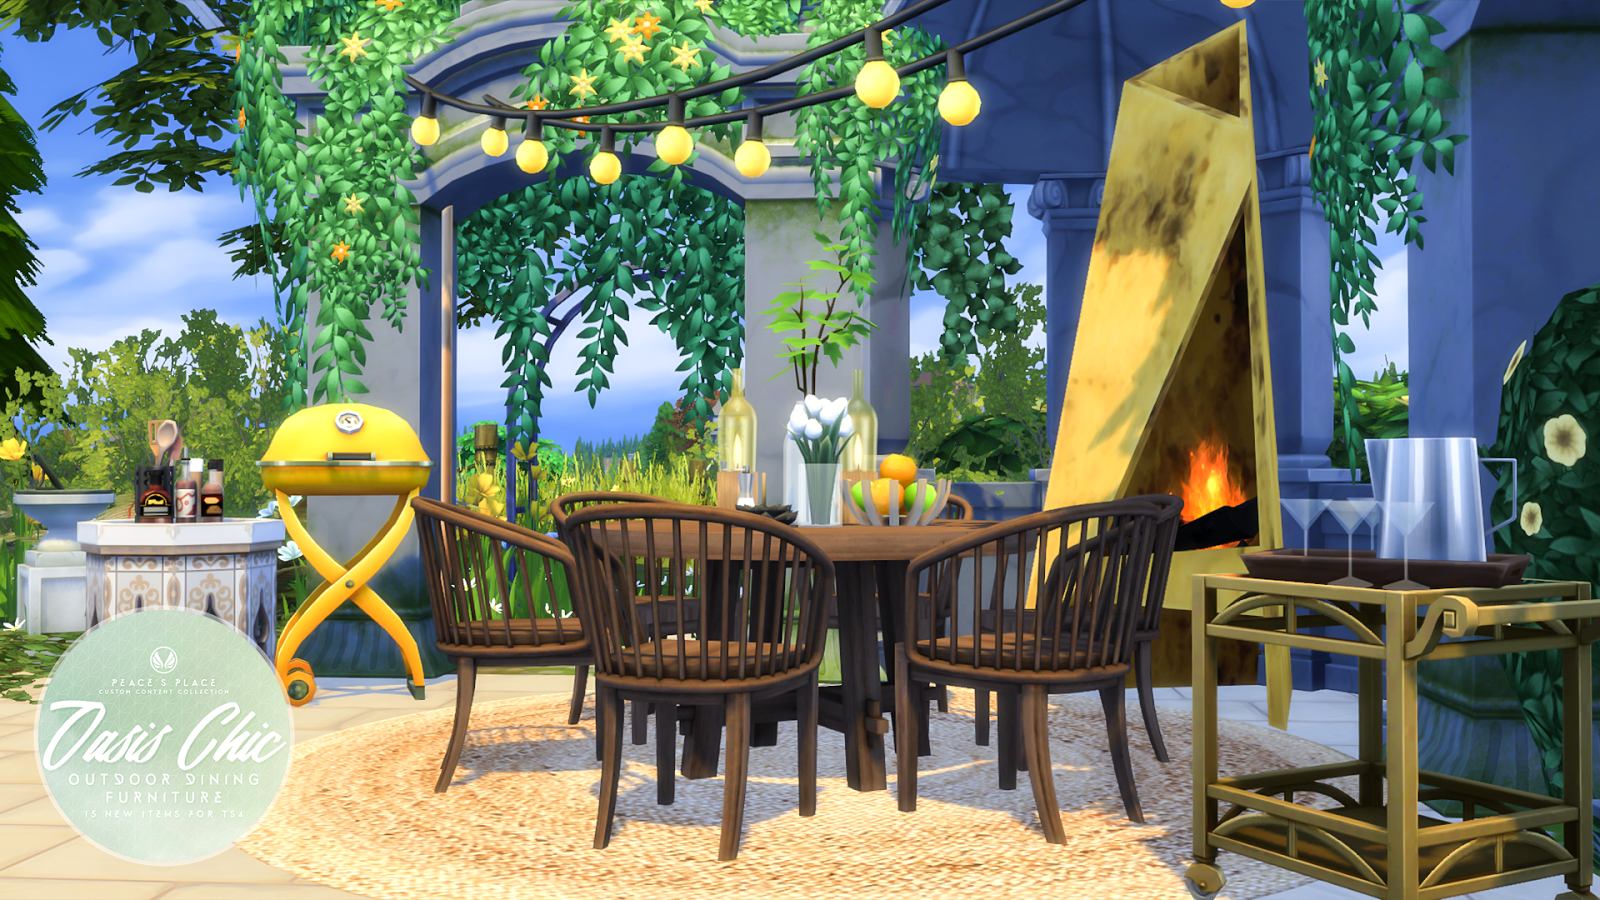 Simsational Designs Oasis Chic Dining Outdoor Furniture Set